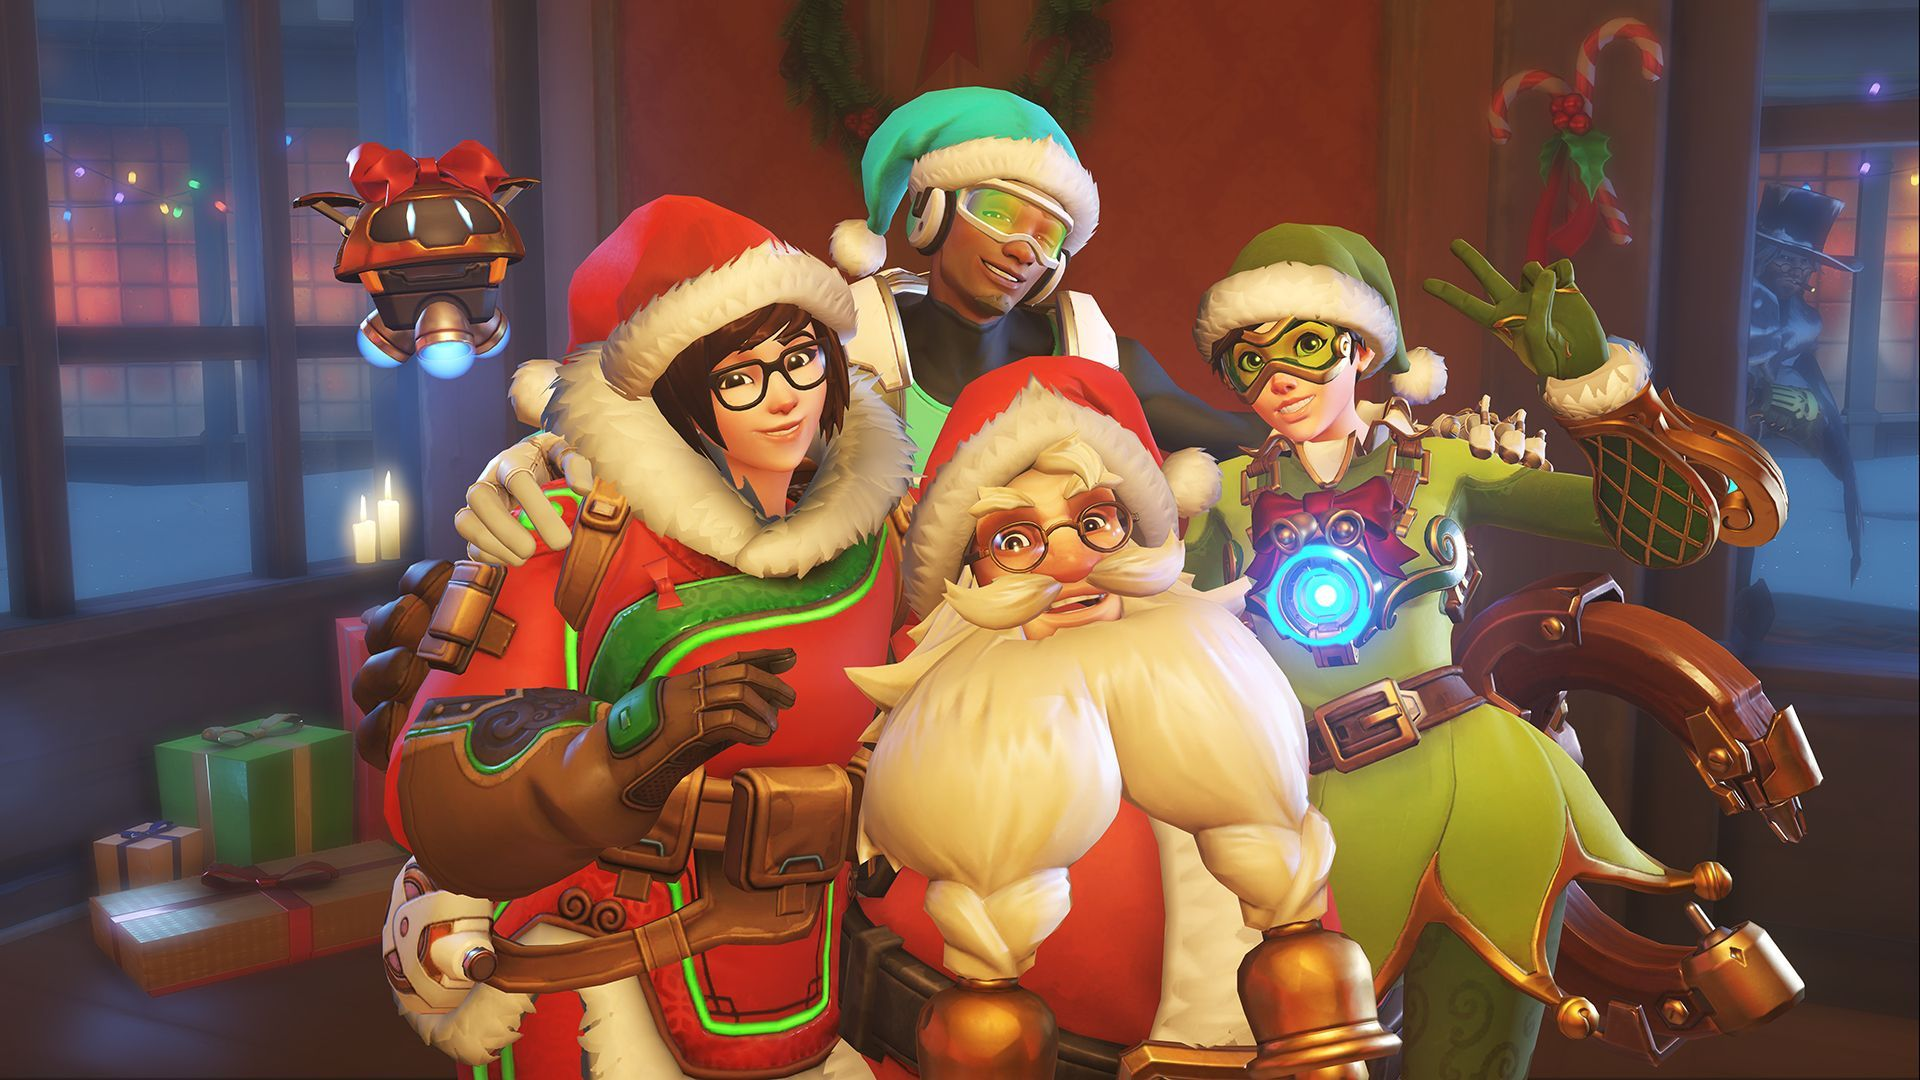 Fortnite Christmas Wallpapers   Top Fortnite Christmas 1920x1080